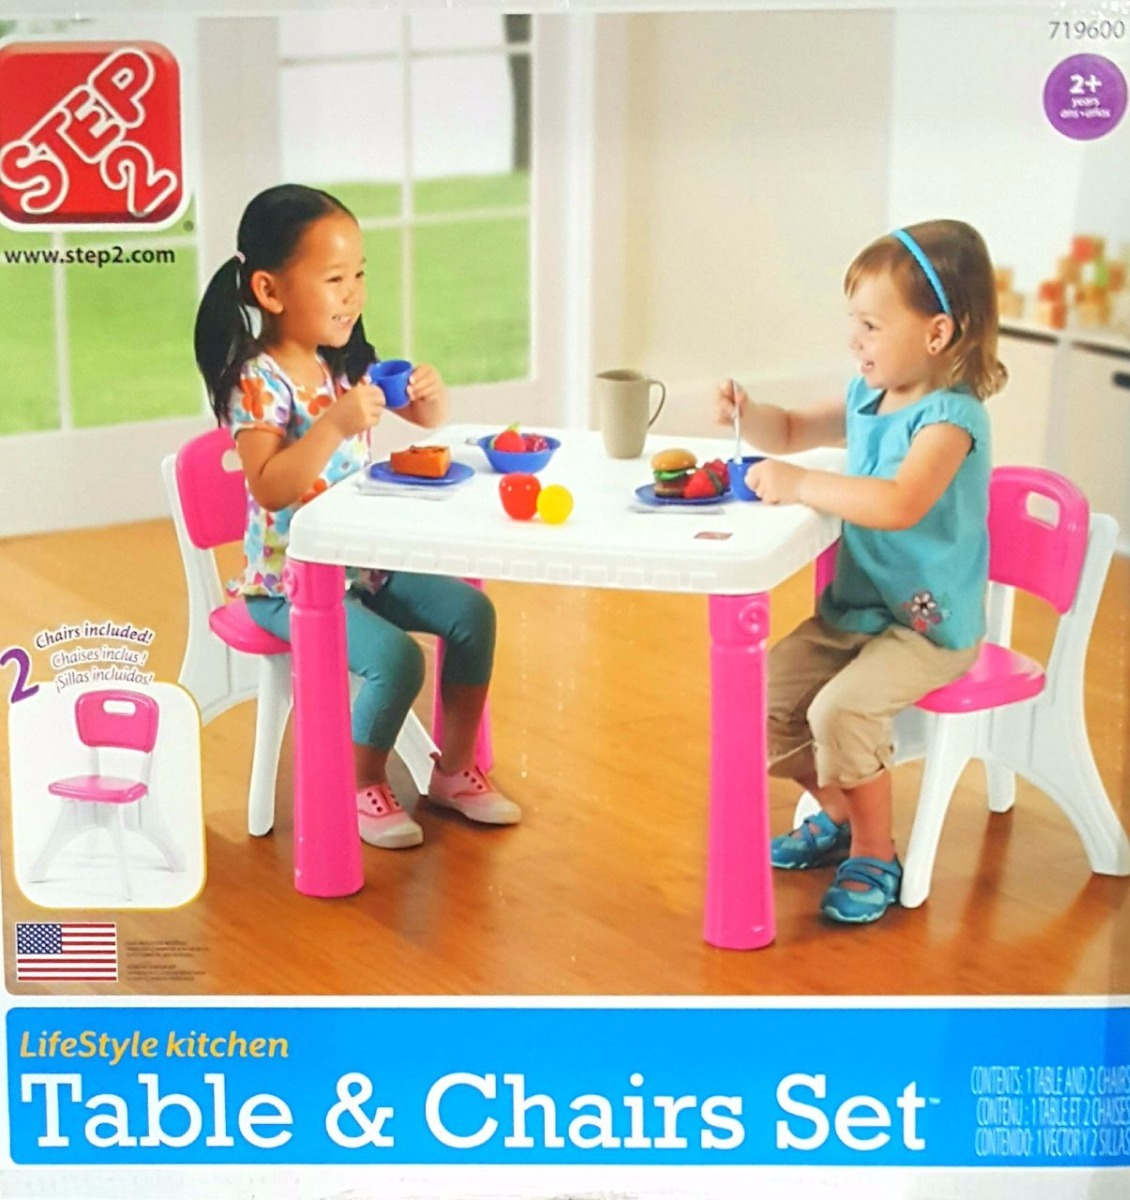 Pink 9 Step9 LifeStyle Kitchen Table and Chairs Set Furniture ...